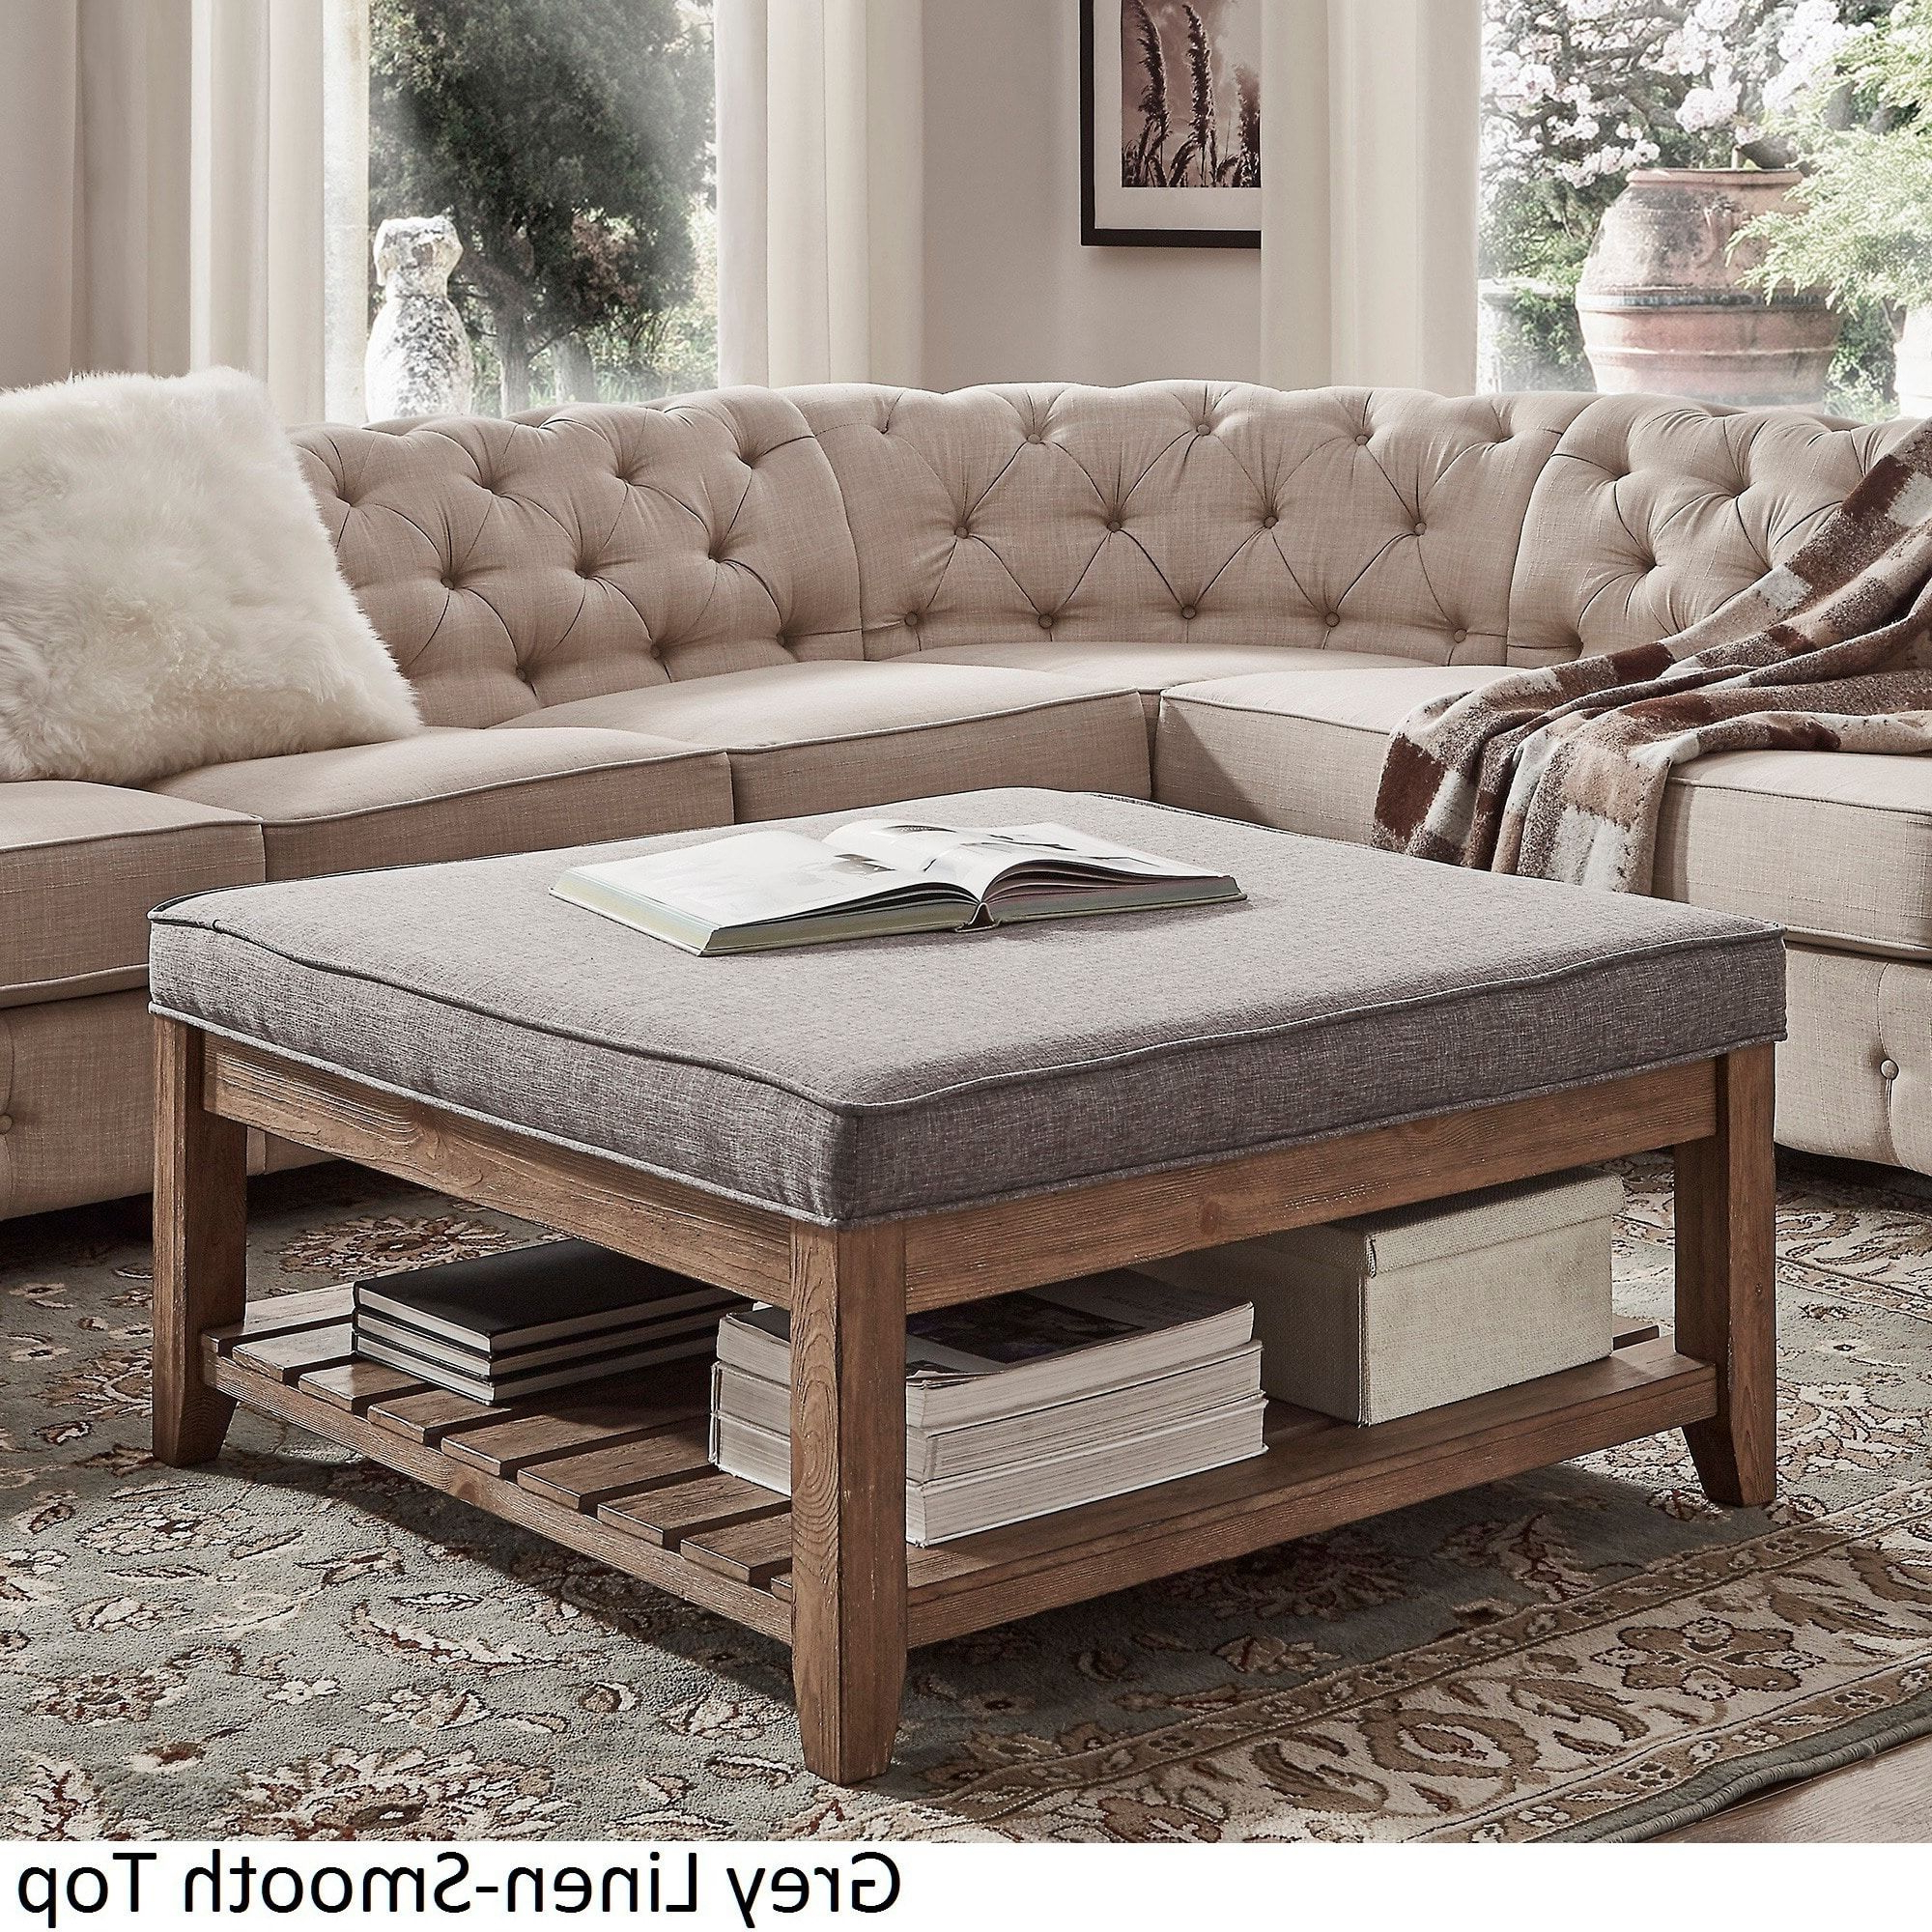 Widely Used Lennon Pine Square Storage Ottoman Coffee Tables For Lennon Pine Planked Storage Ottoman Coffee Tableinspire (View 19 of 20)